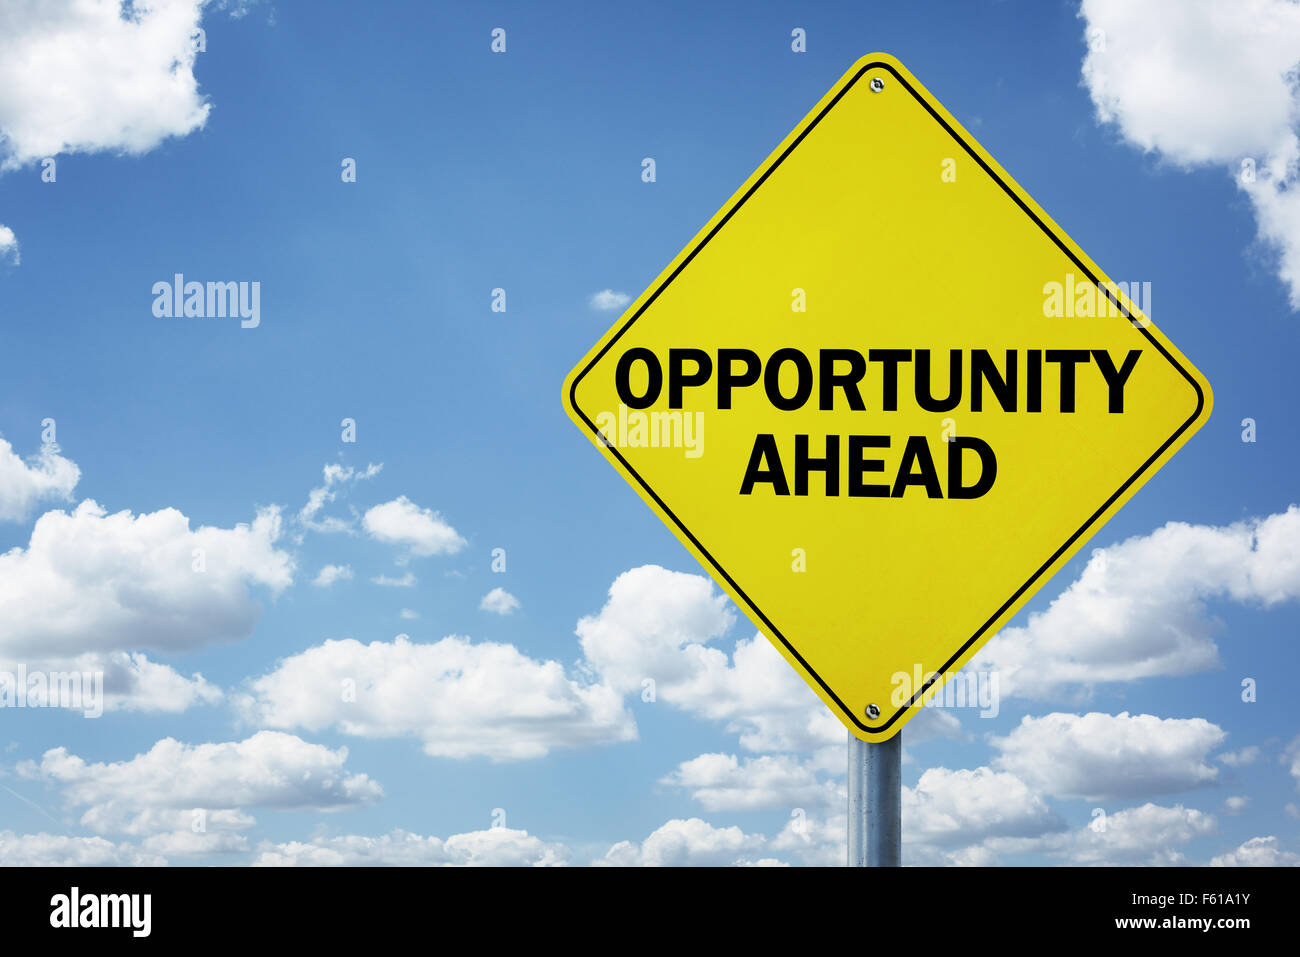 Opportunity ahead road sign - Stock Image